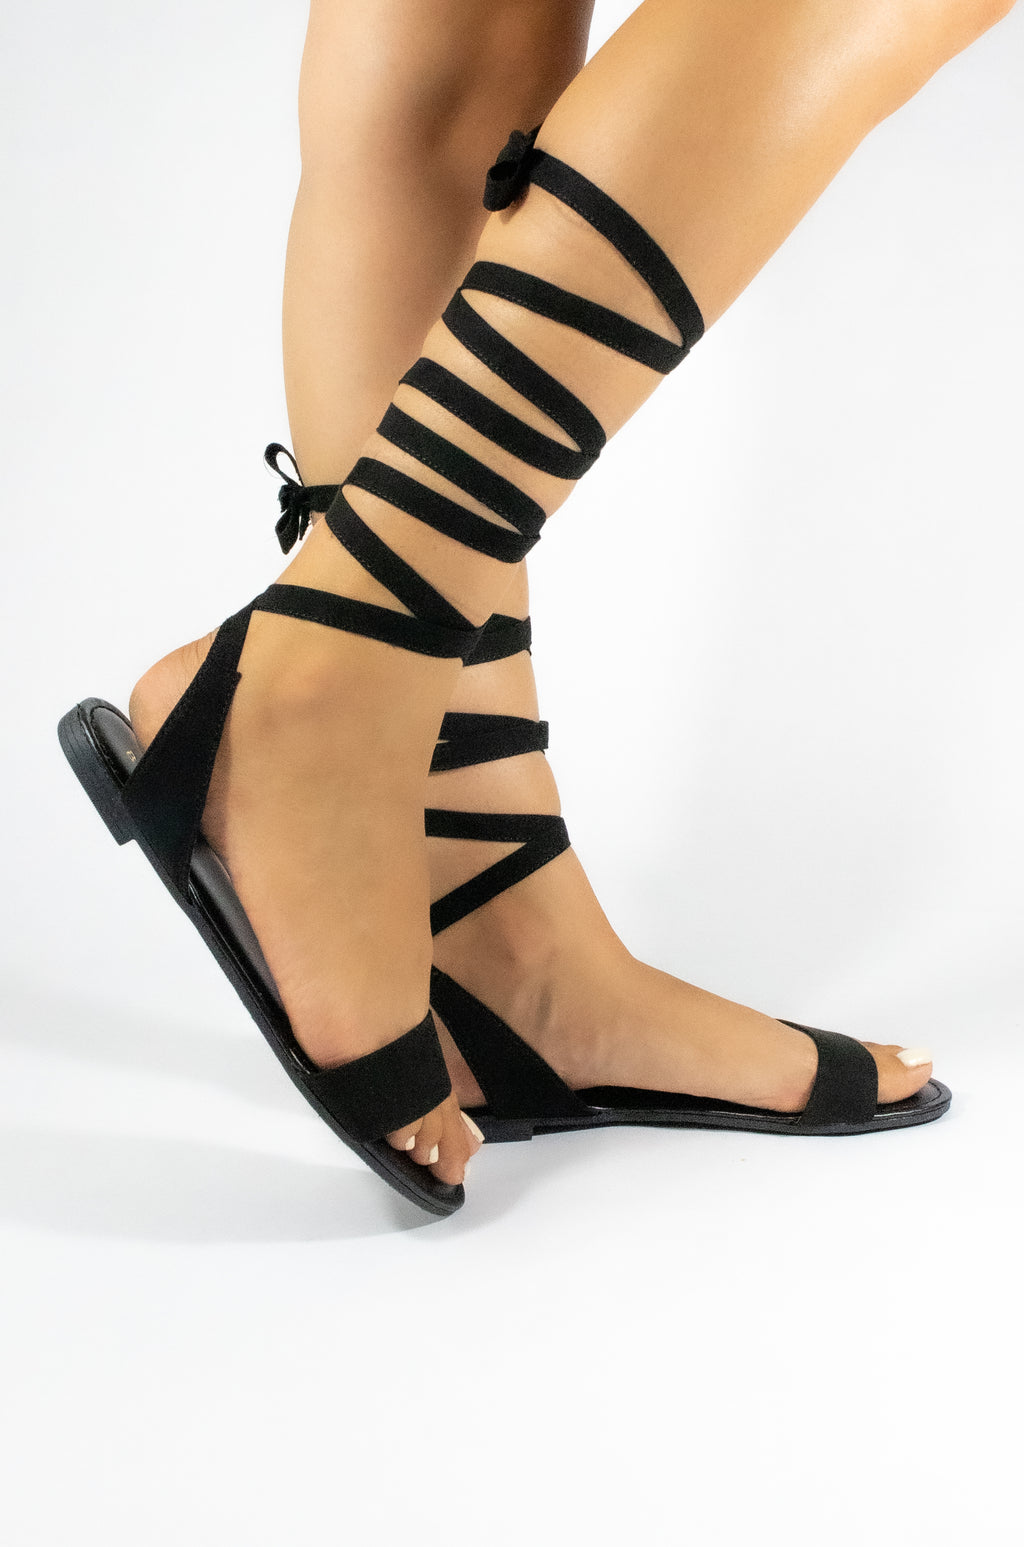 Queen Bee - Black Lace Up Sandals